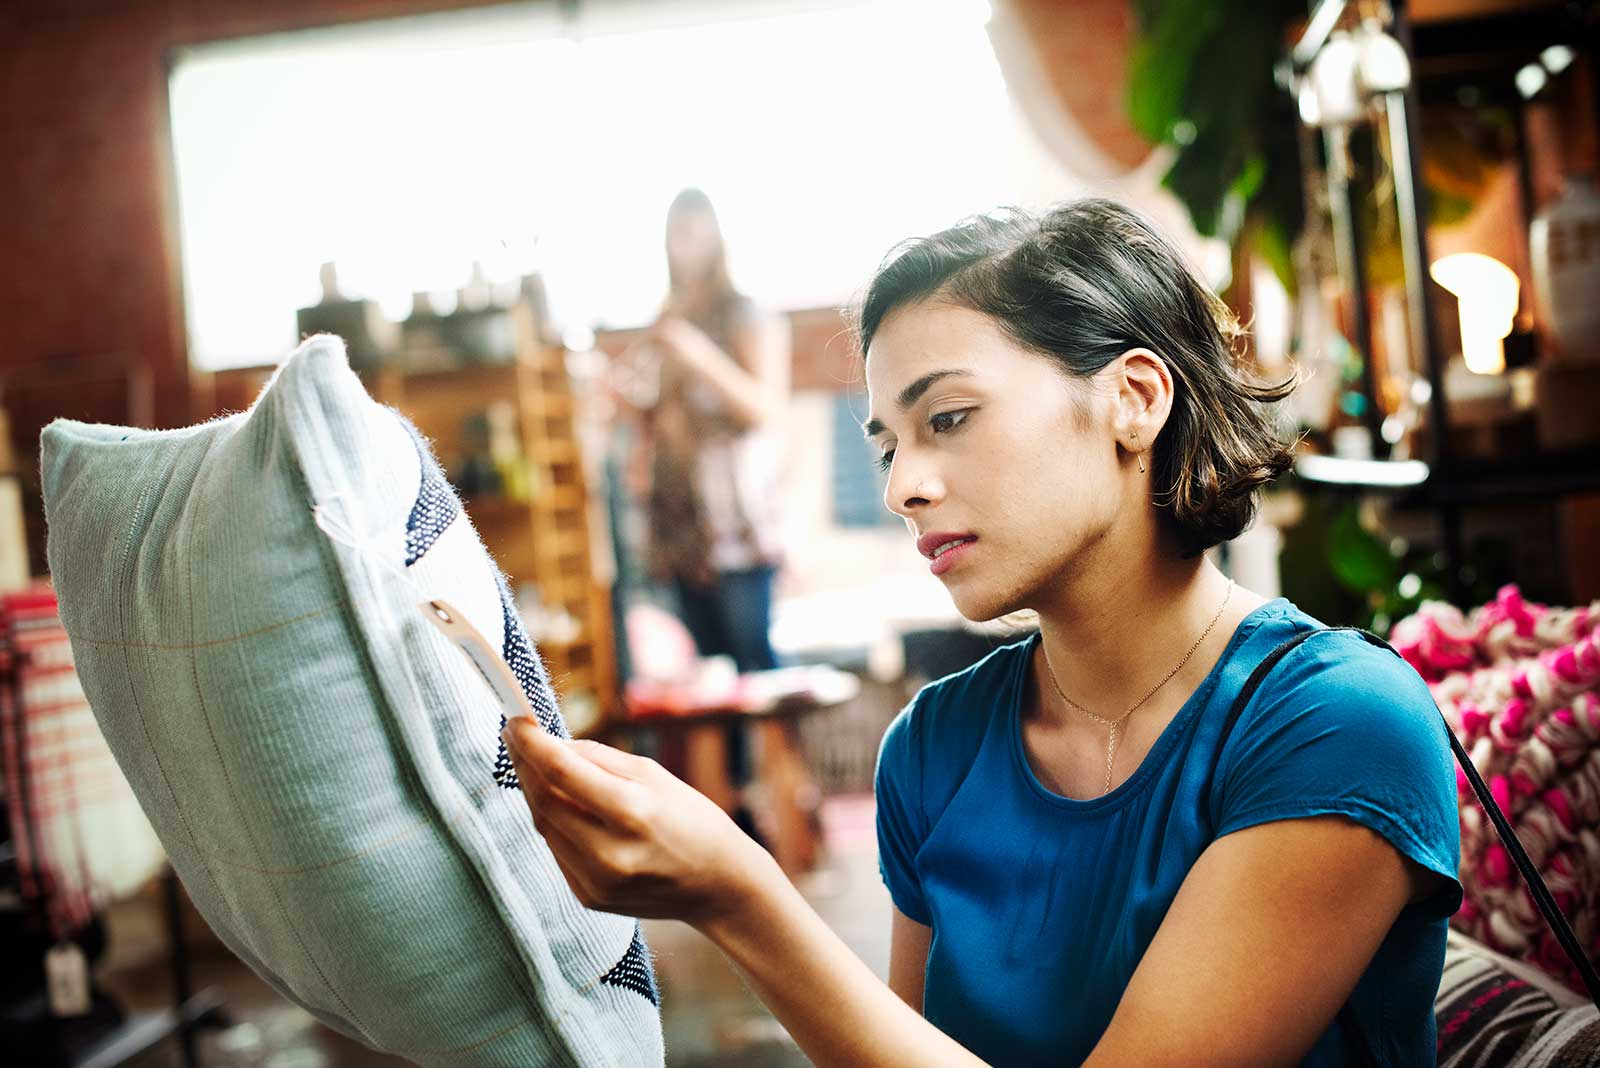 What to look for when buying sustainable products